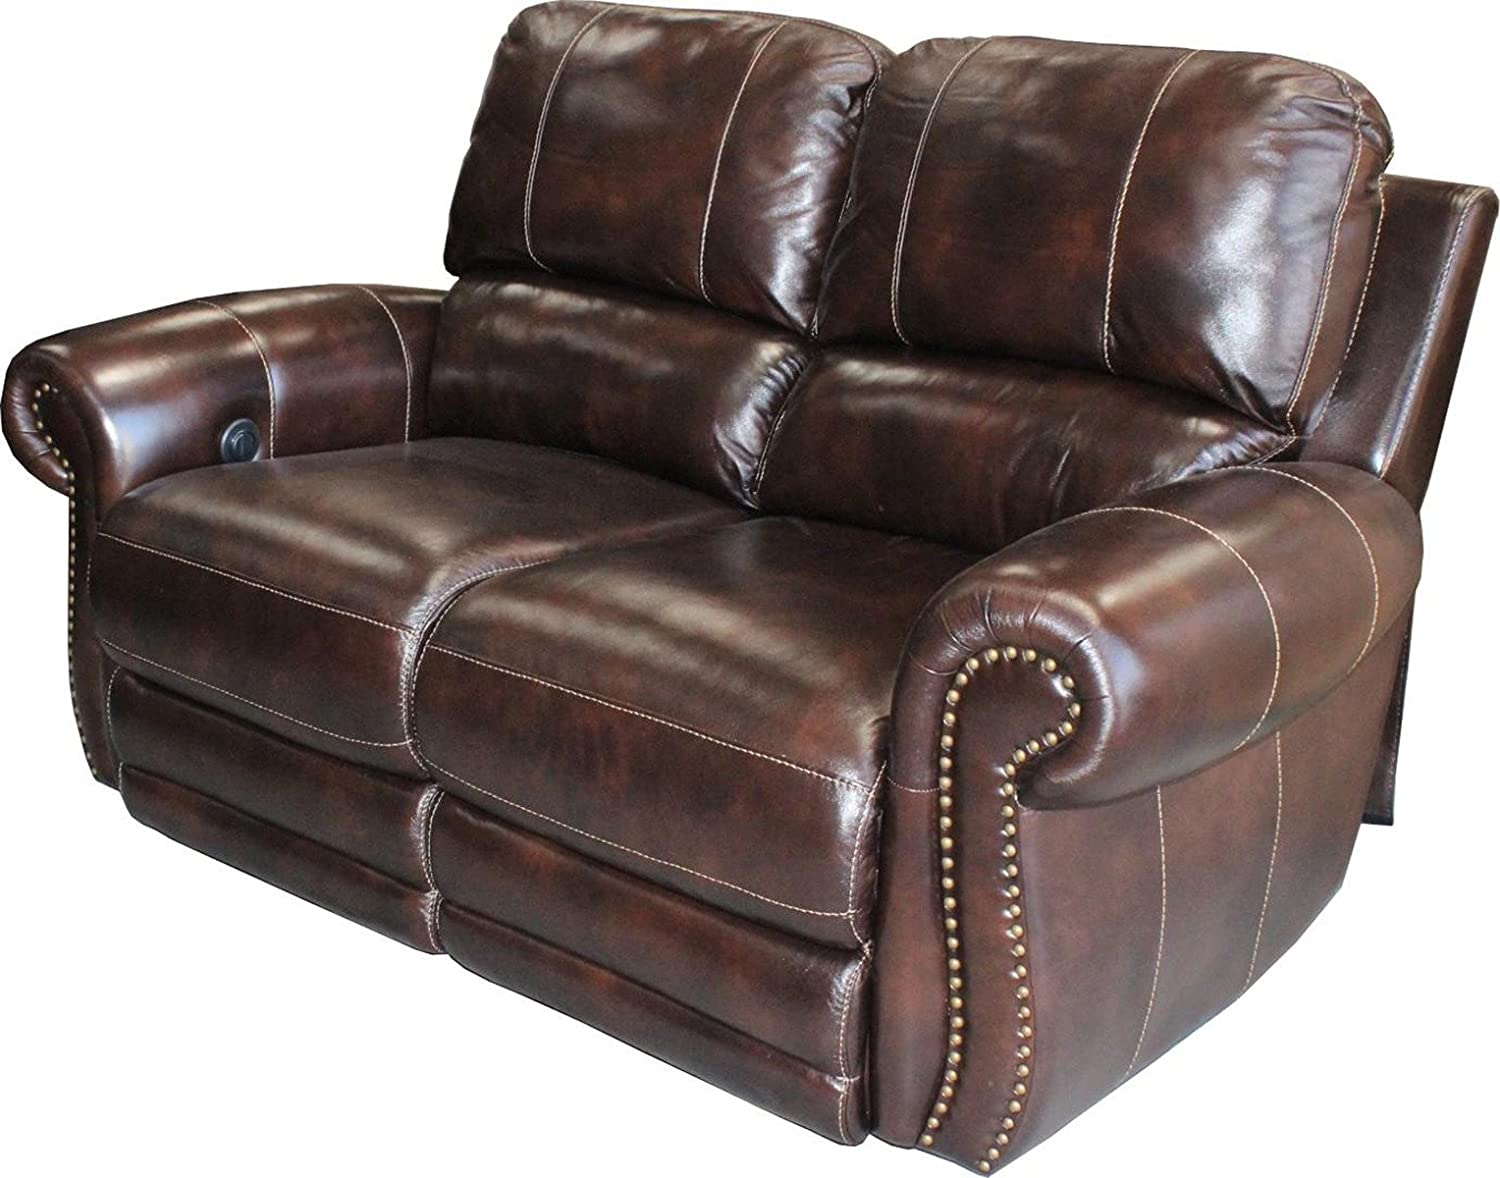 Amazoncom Parker House Thurston Living Room Set with Sofa and